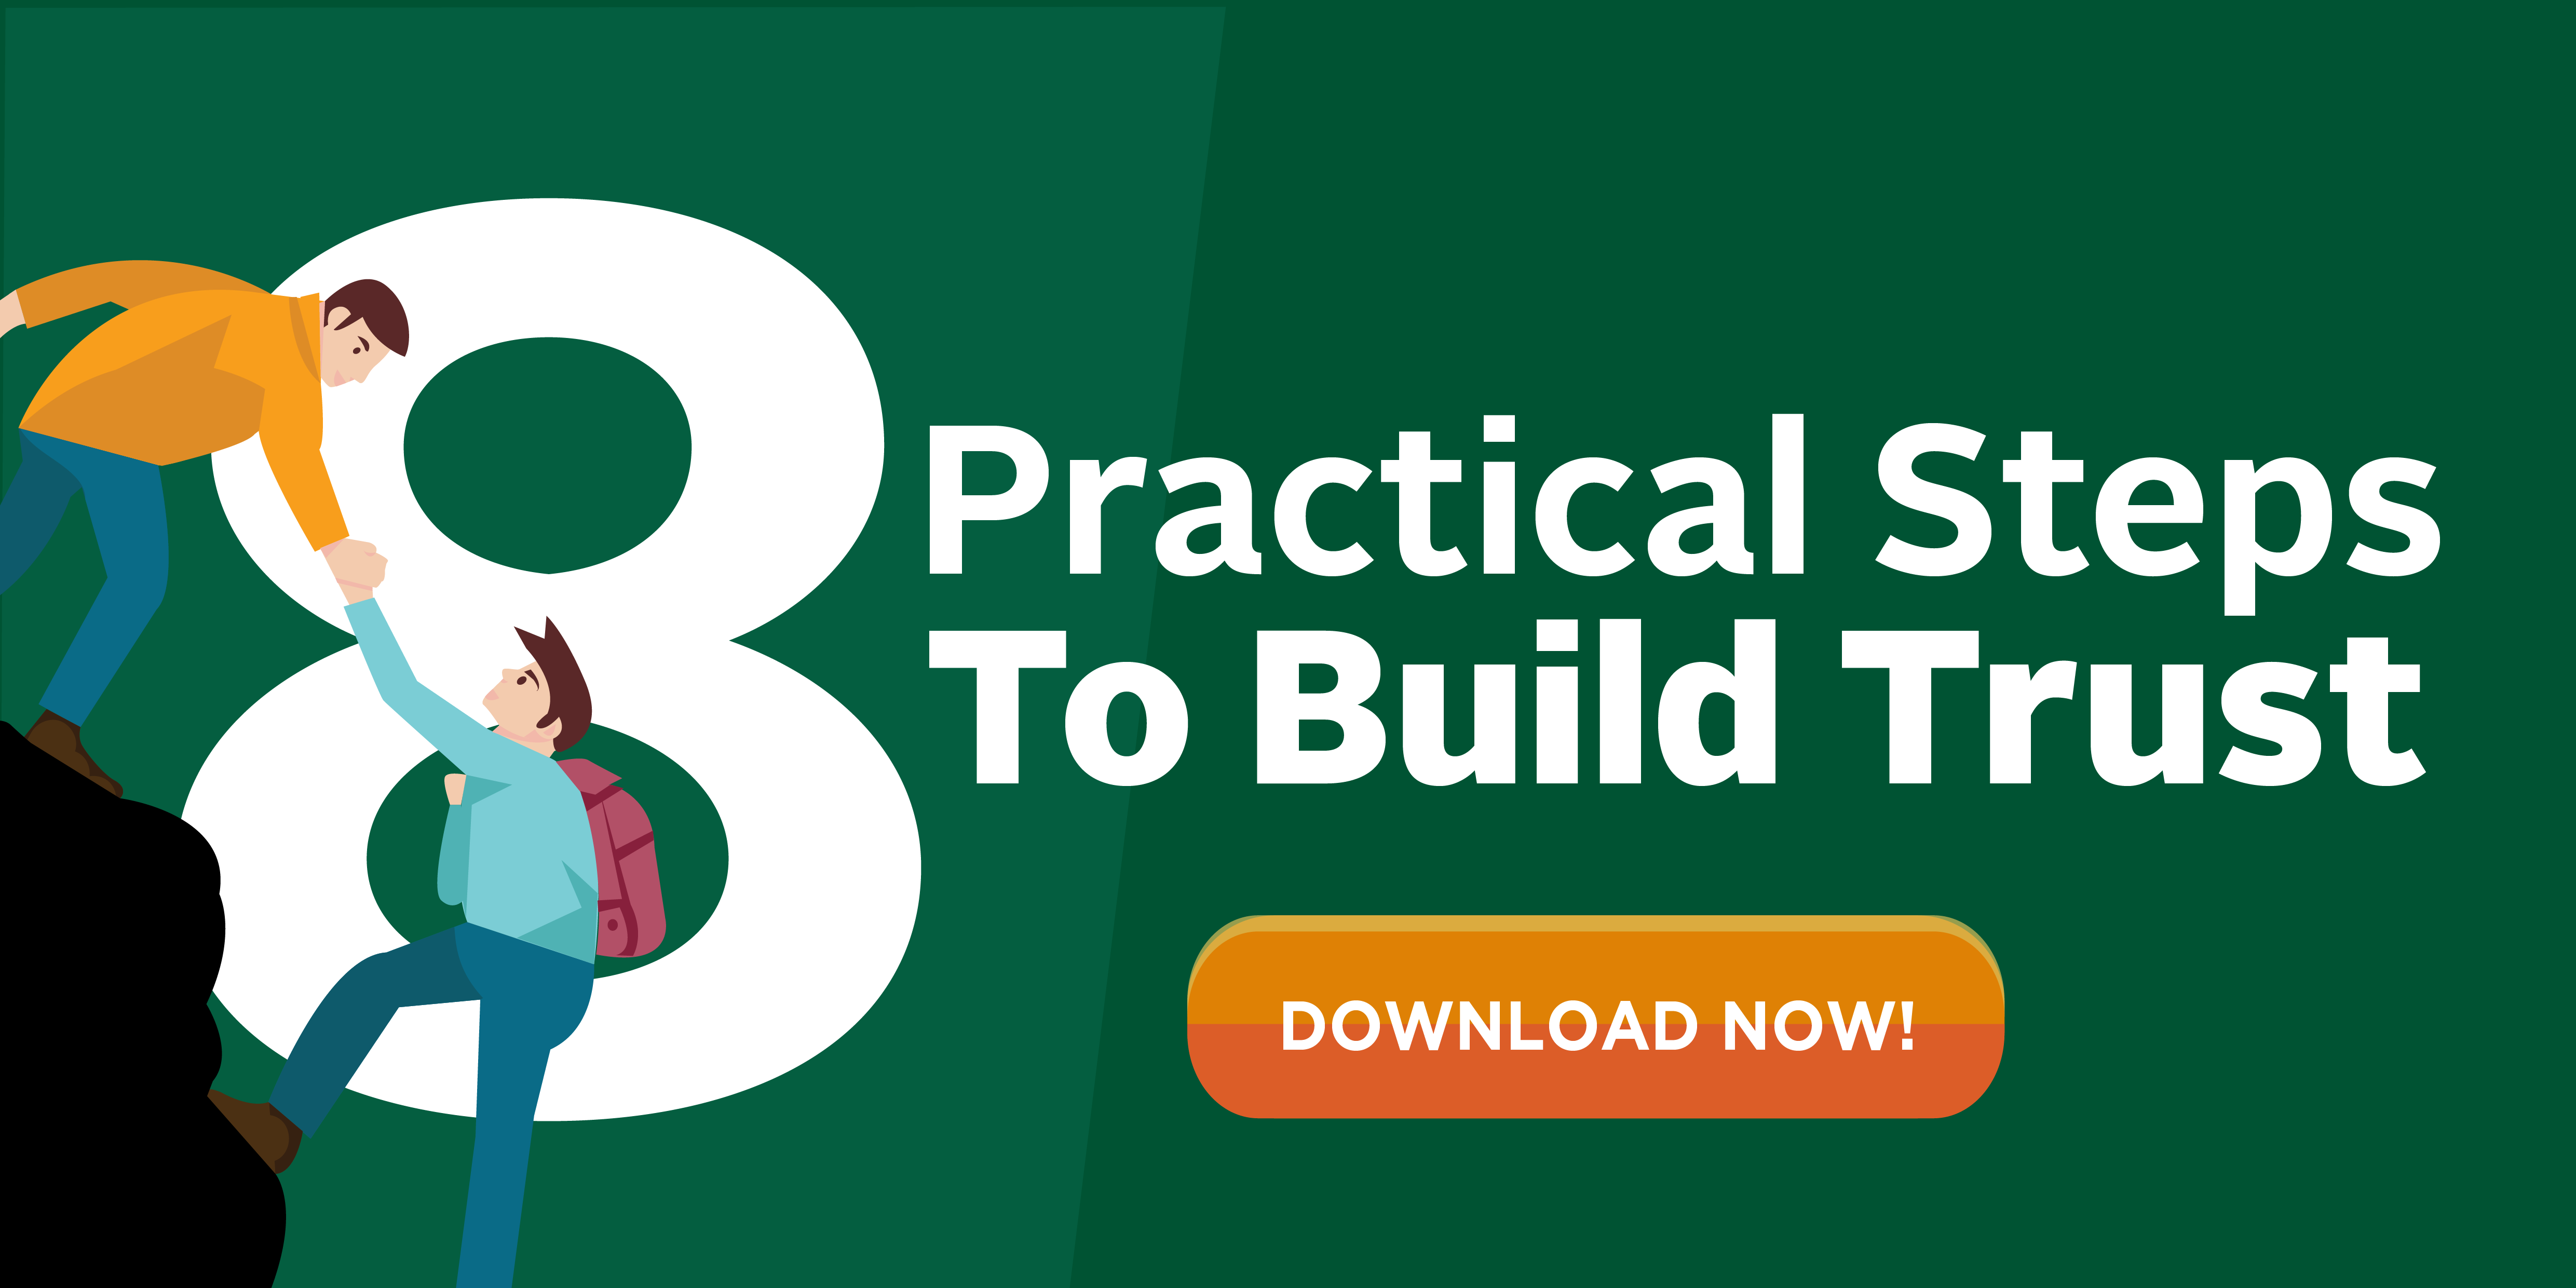 8 Practical Steps to Build Trust